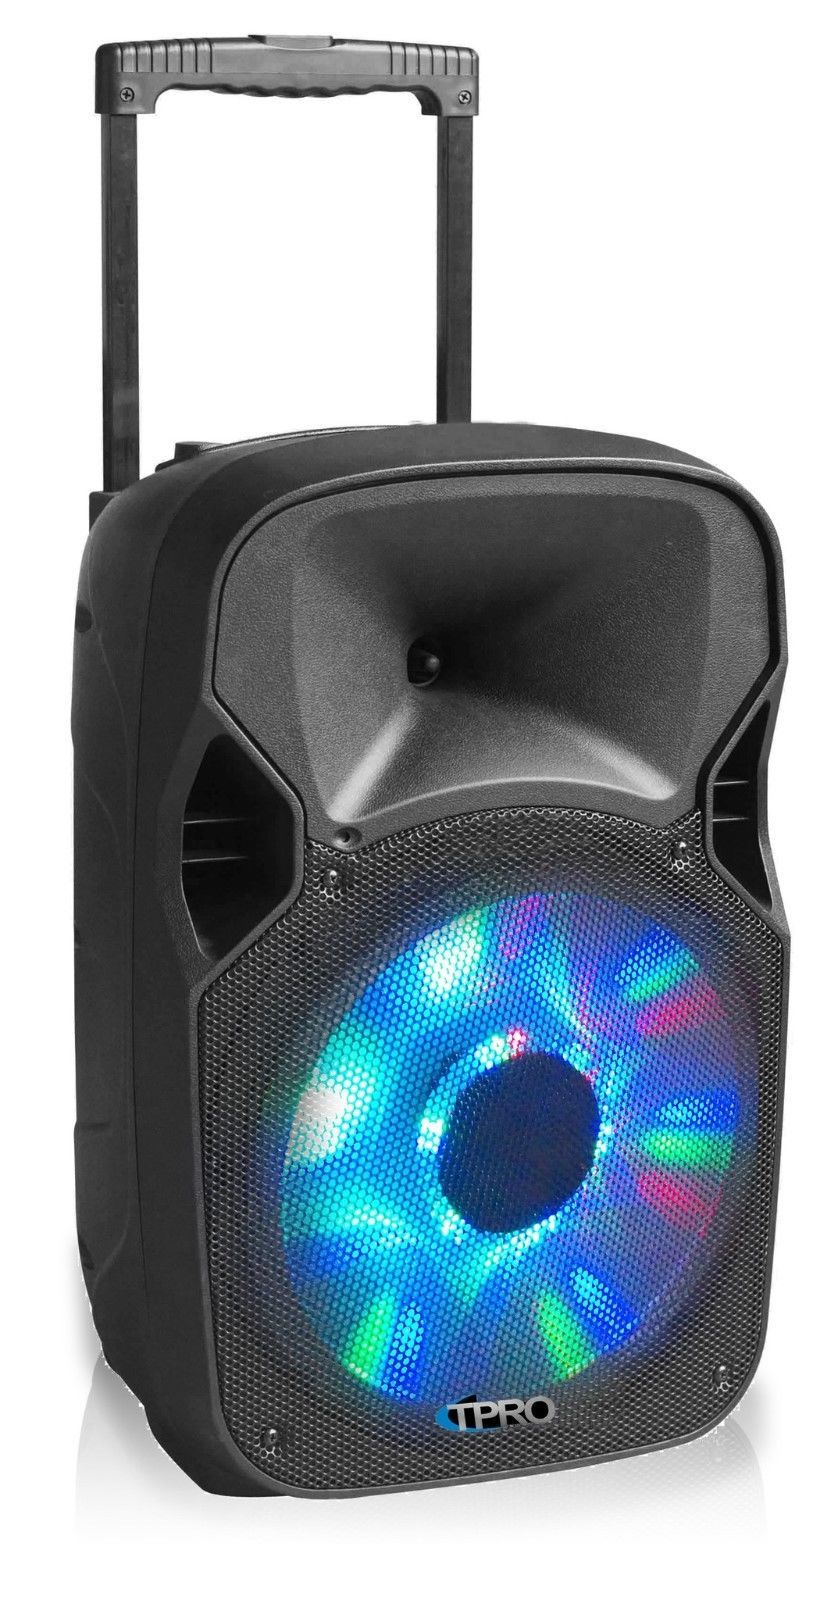 "TECHNICAL PRO 12"" ACTIVE SPEAKER PB12M LED PORTABLE SPEAKER with Microphone"